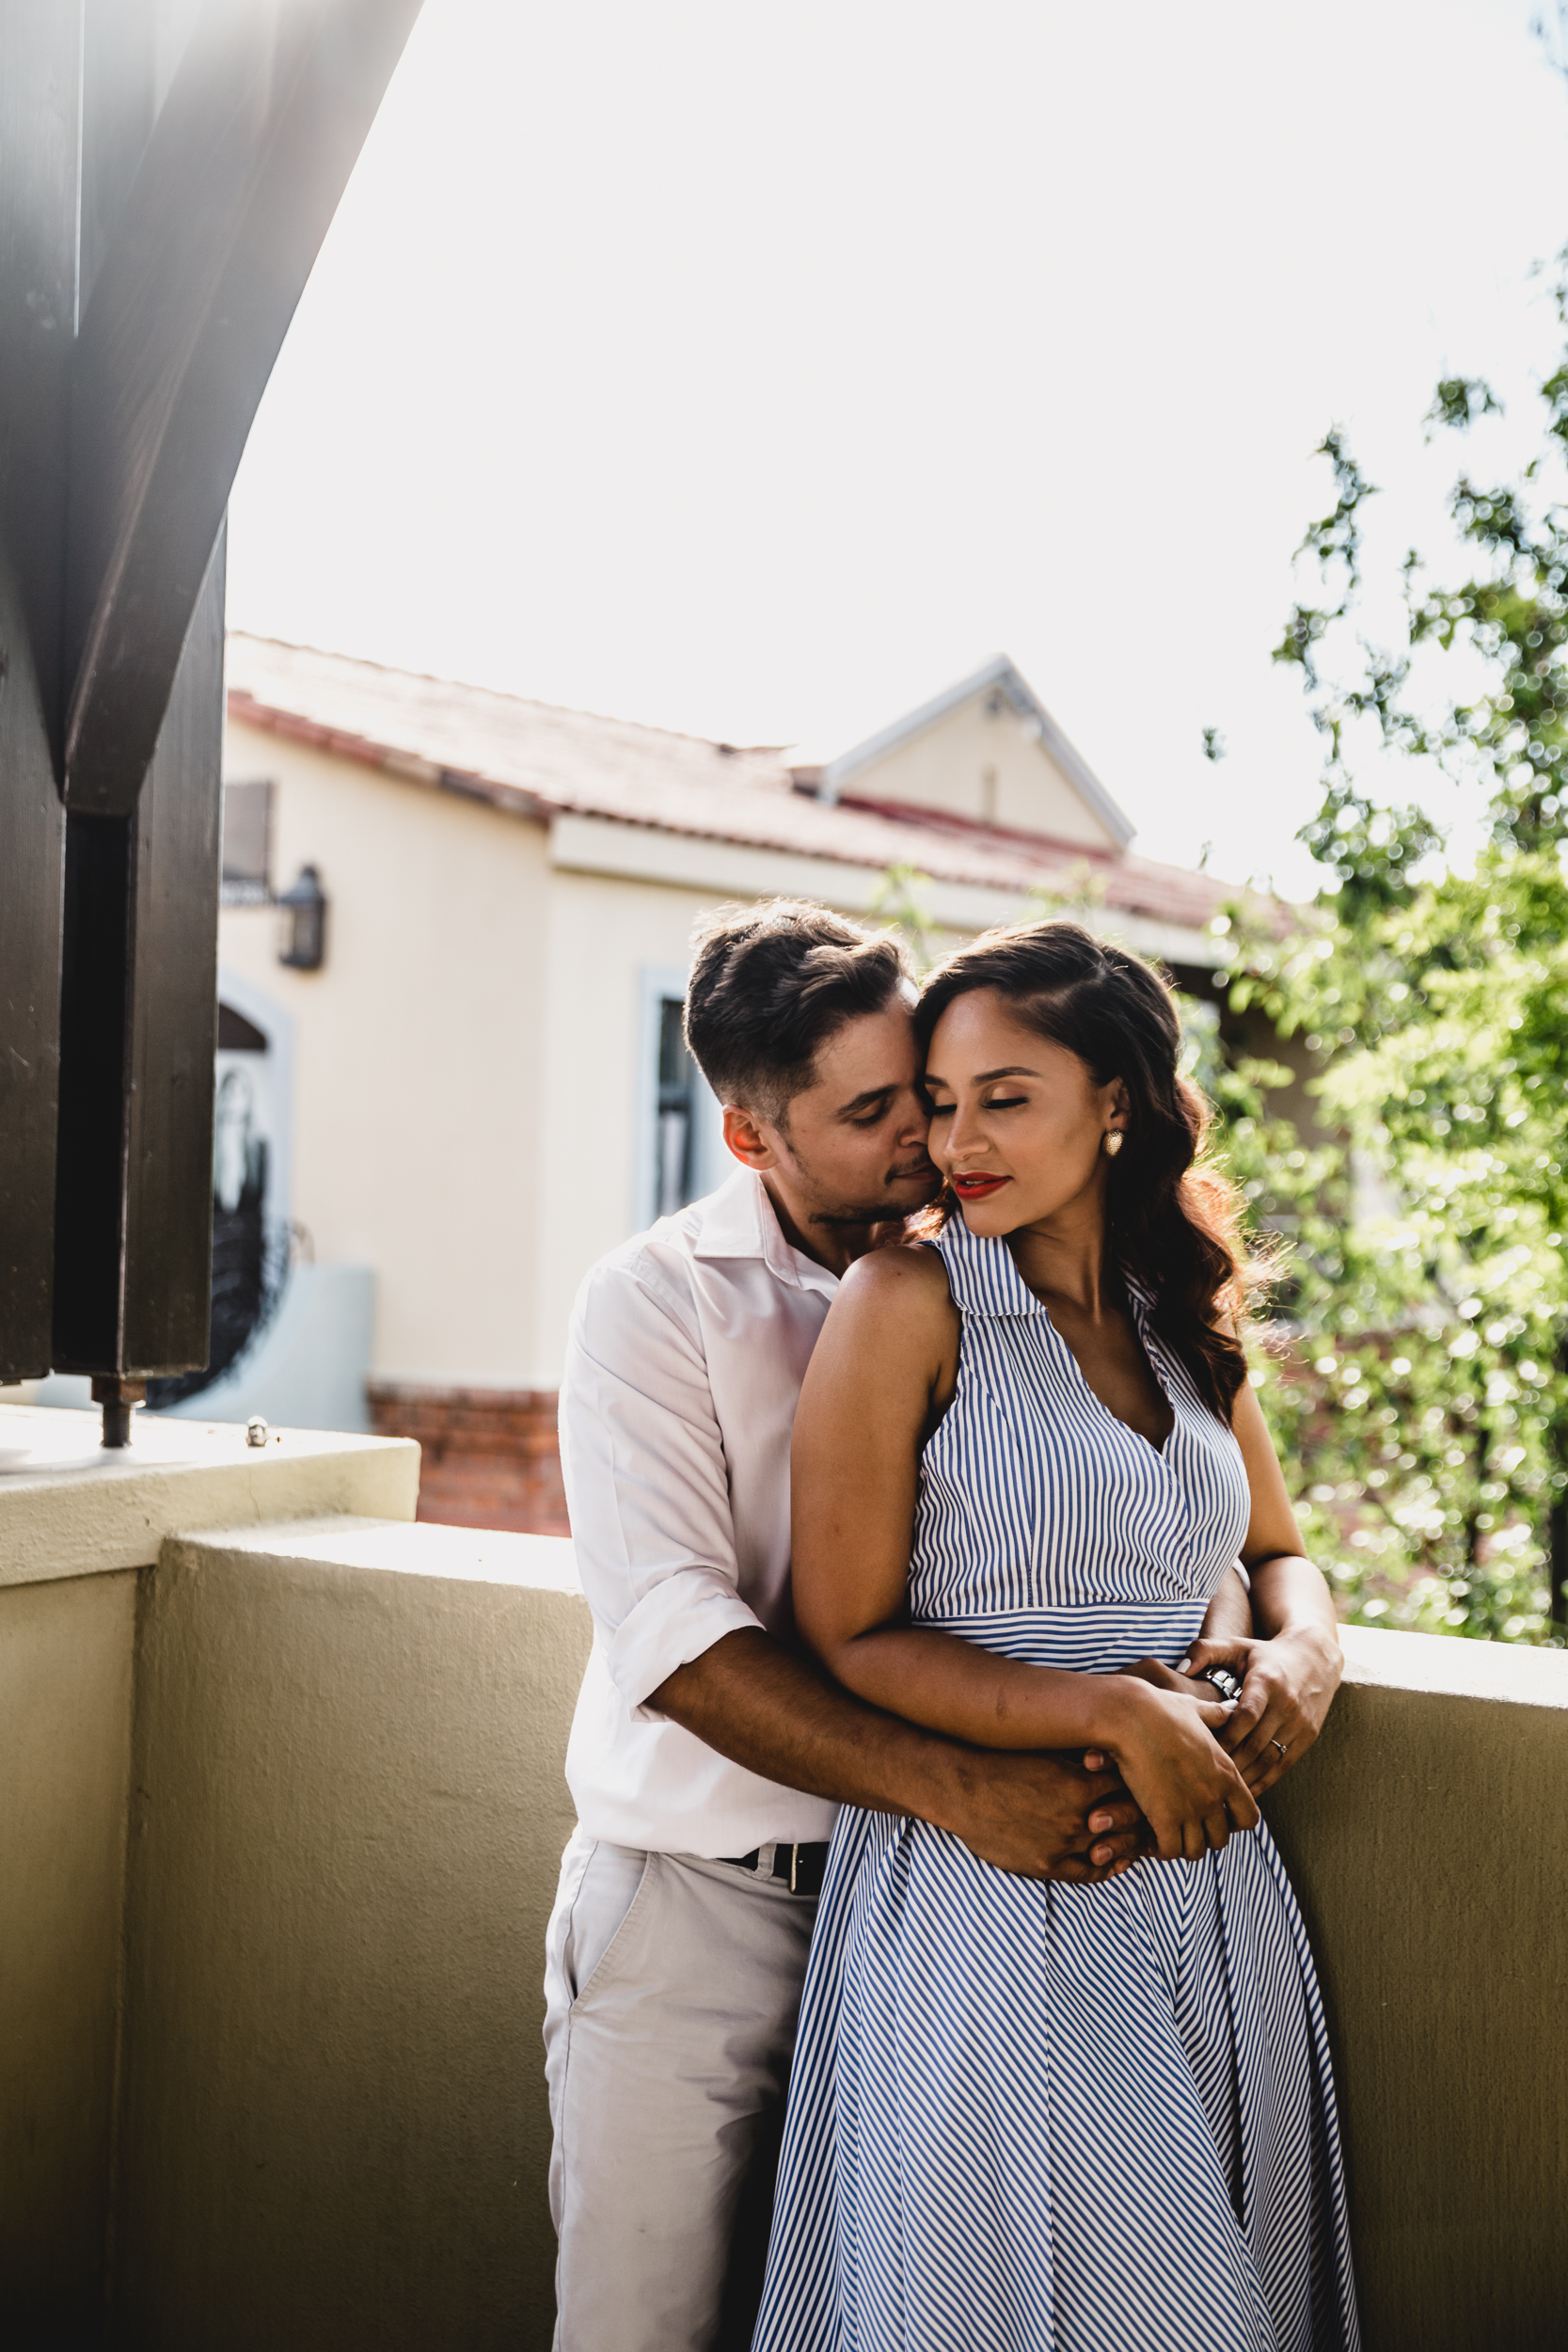 Vintage Chic Engagment Session in Namibia Nifty Studio05